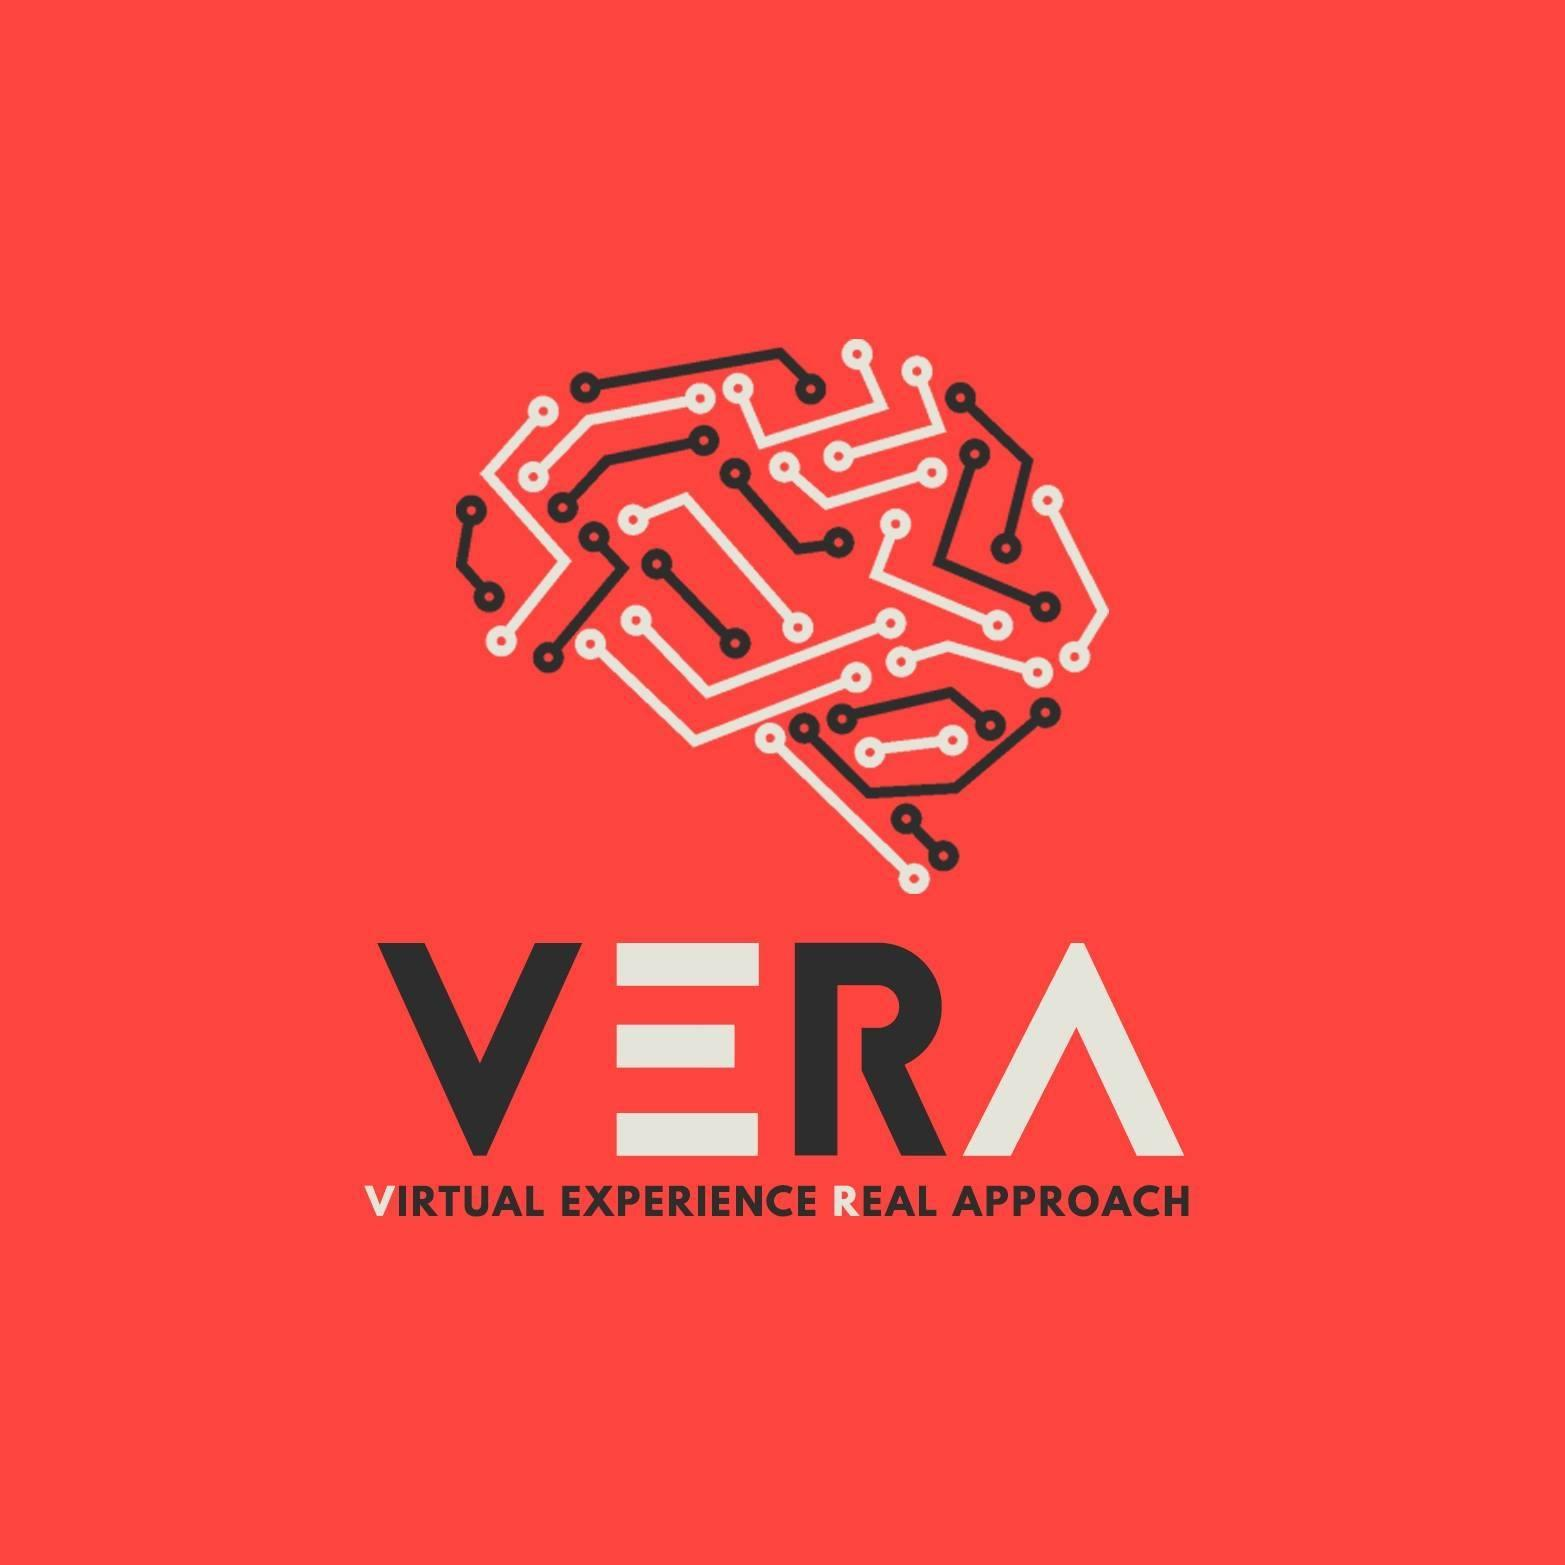 VERA Virtual Experience Real Approach